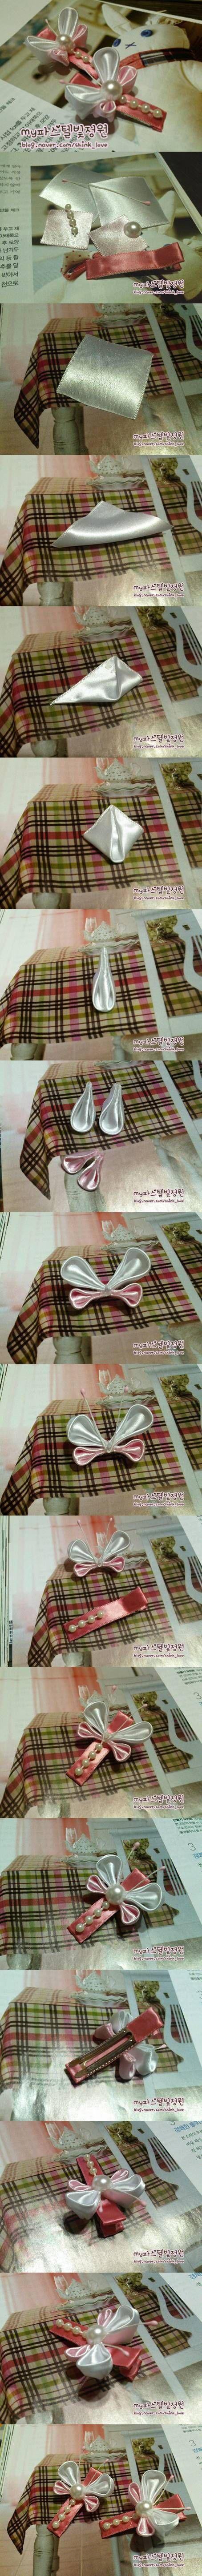 DIY Ribbon Butterfly Hair Clip